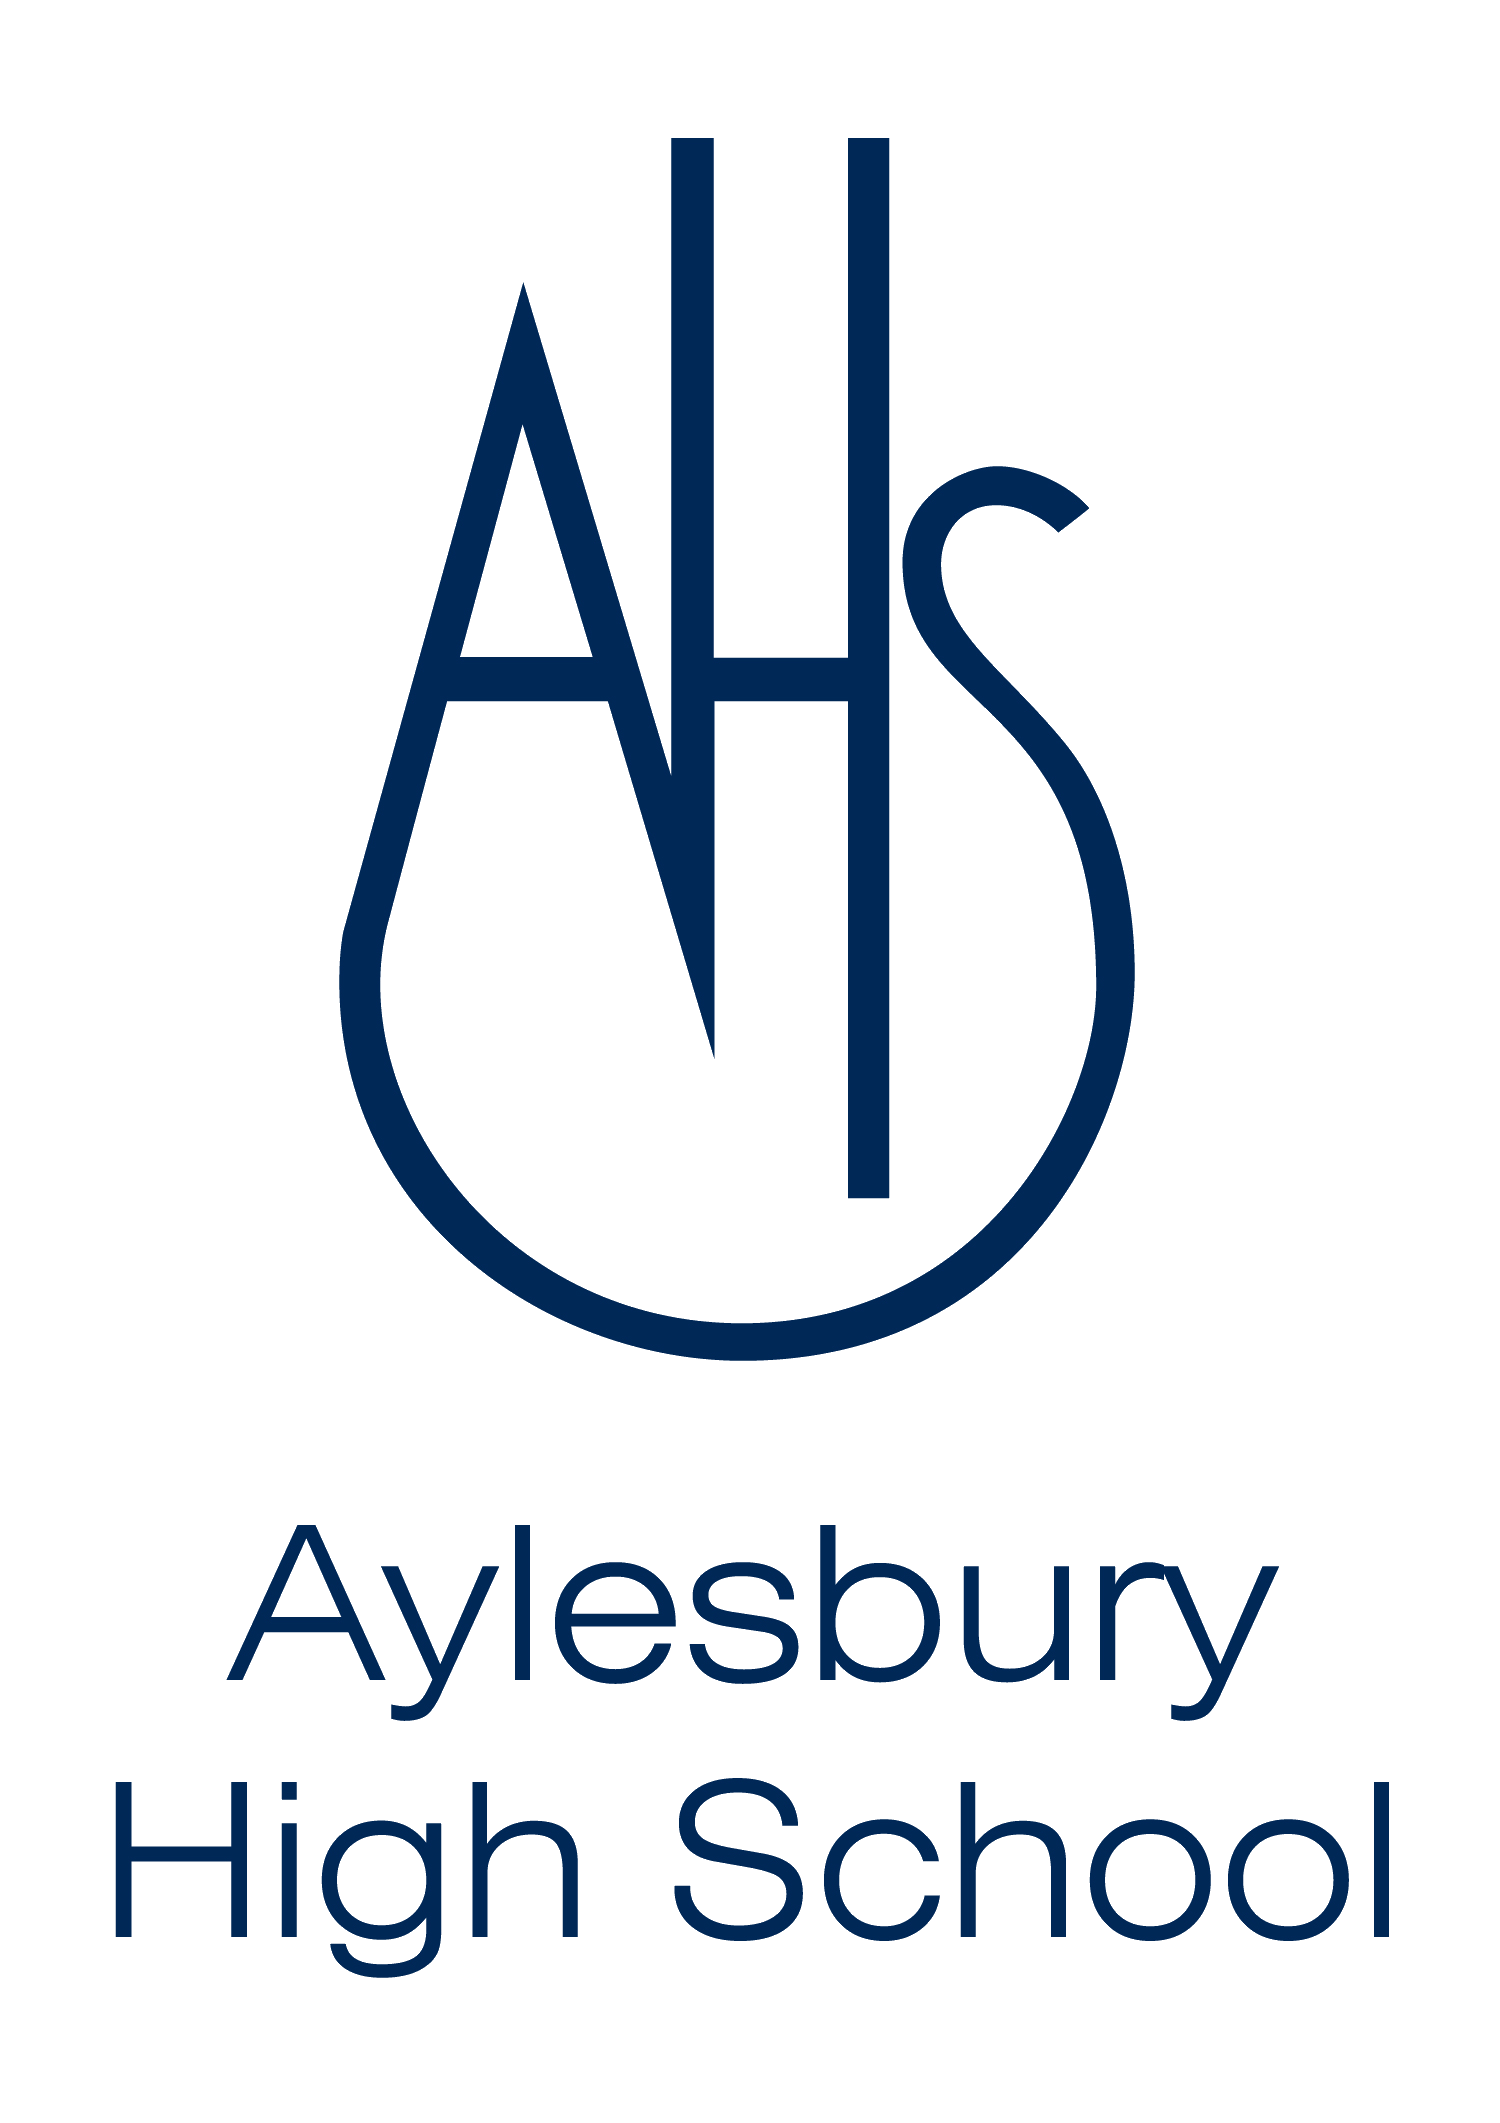 Aylesbury High School